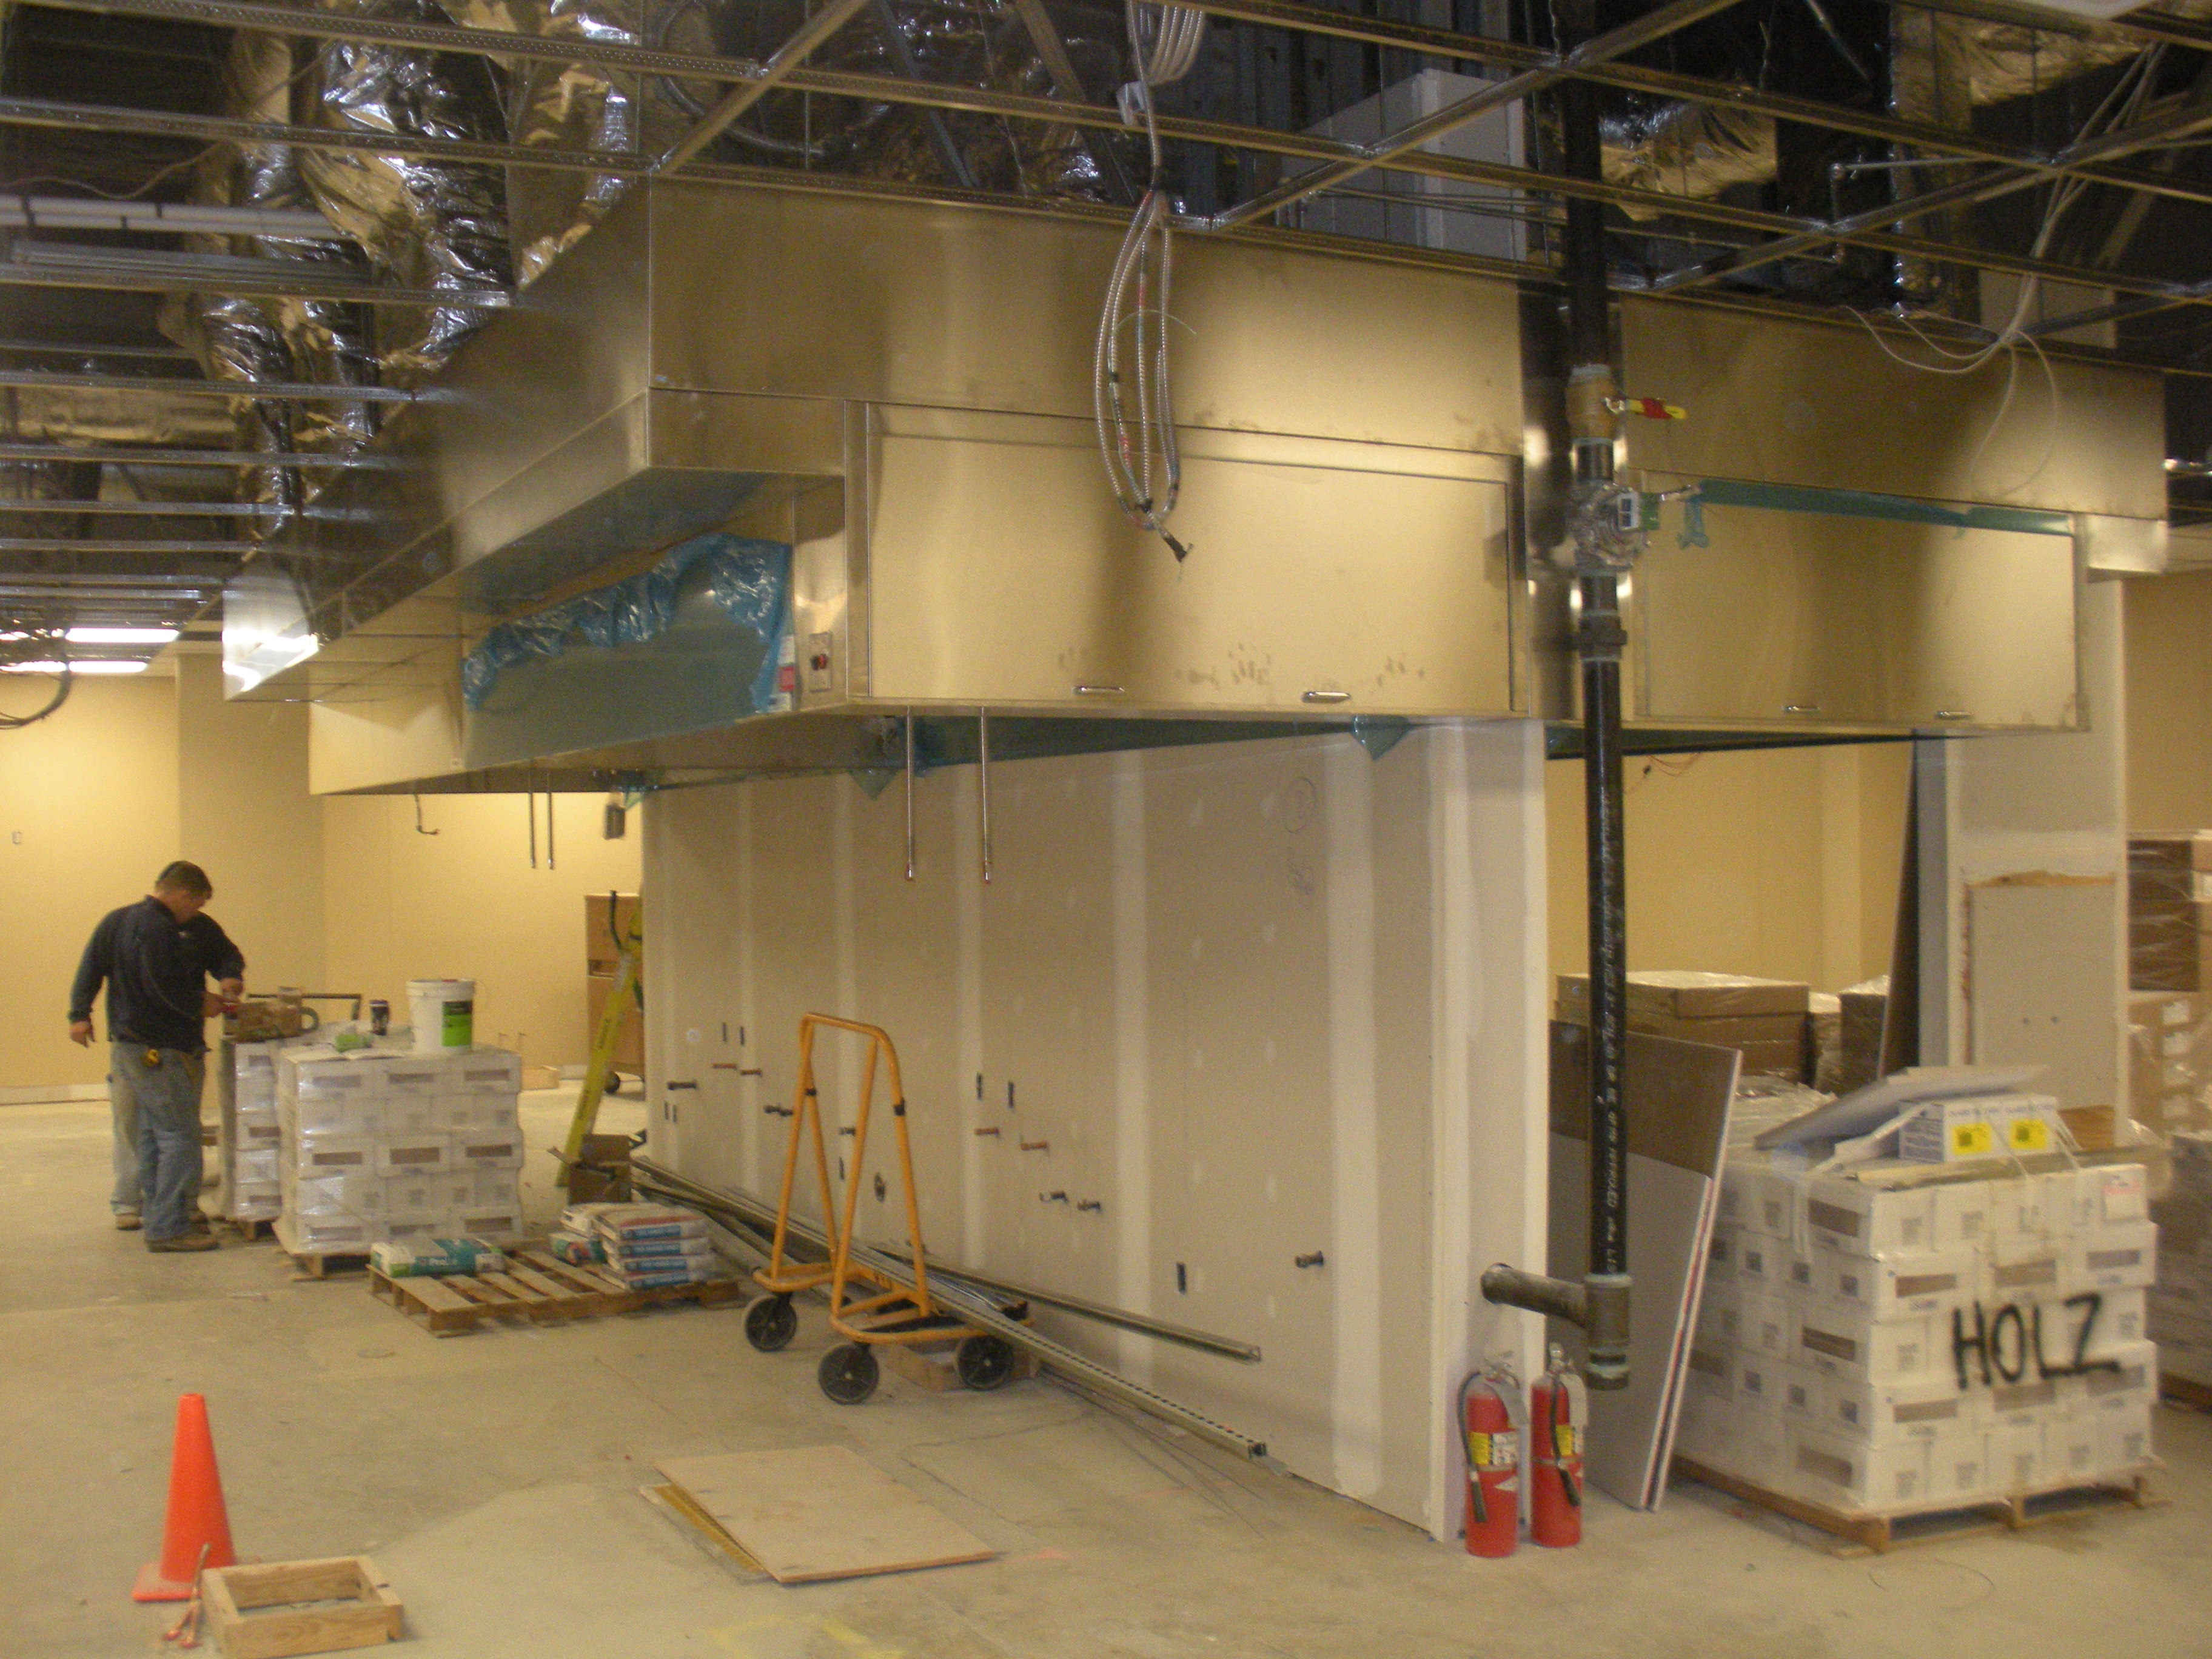 Commercial Kitchen Construction : Renovation page on the level